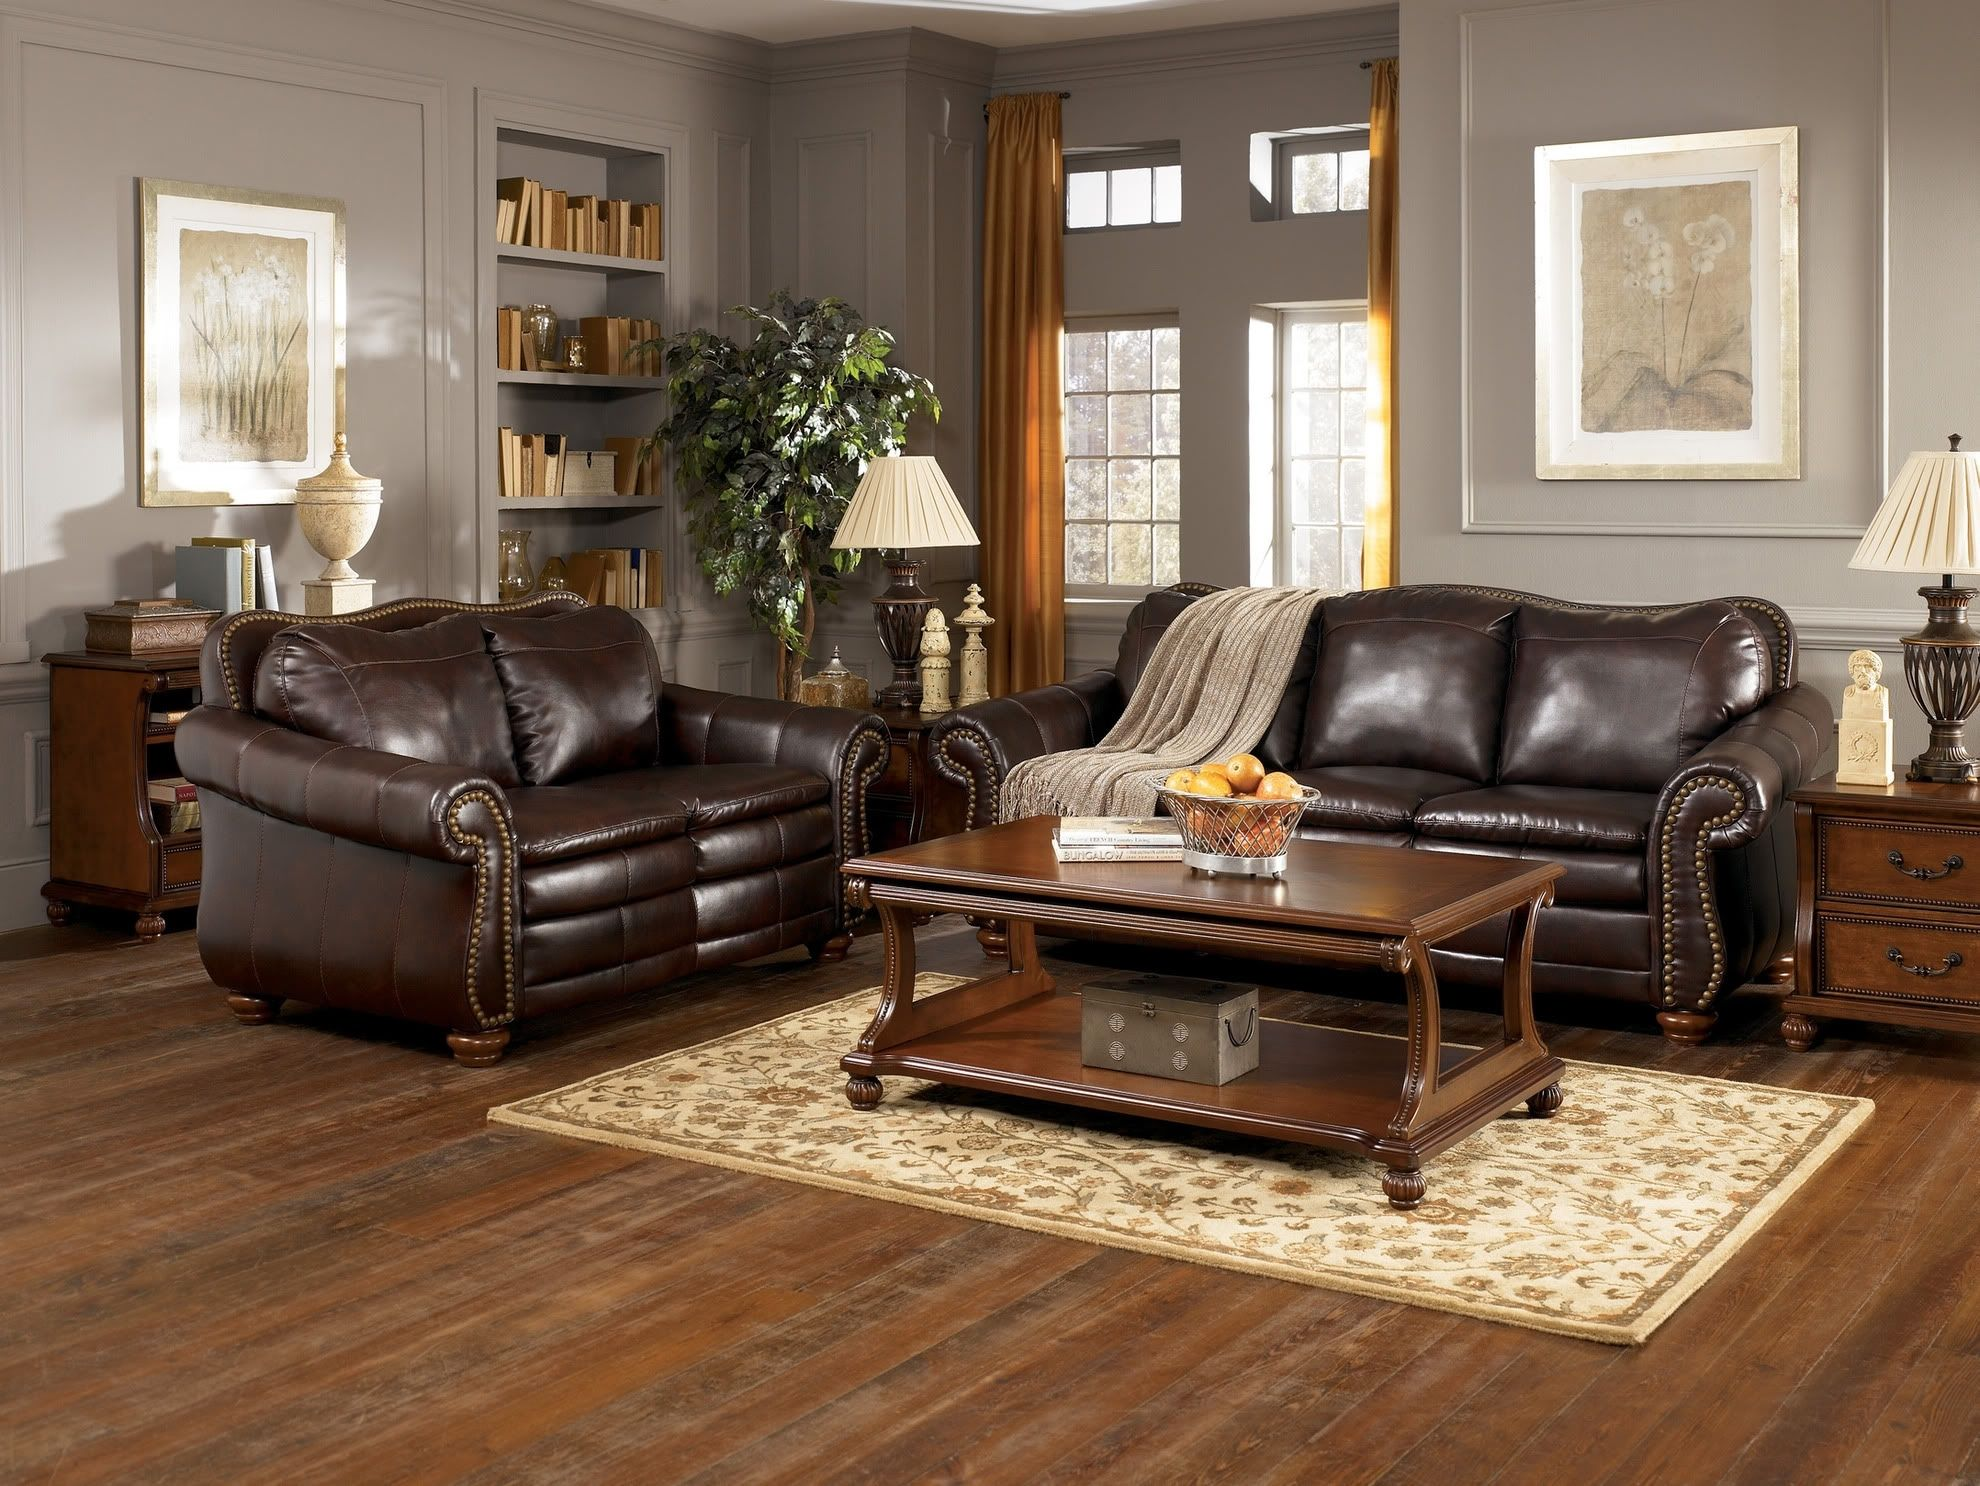 Paint Colors For Living Room With Dark Brown Furniture ...